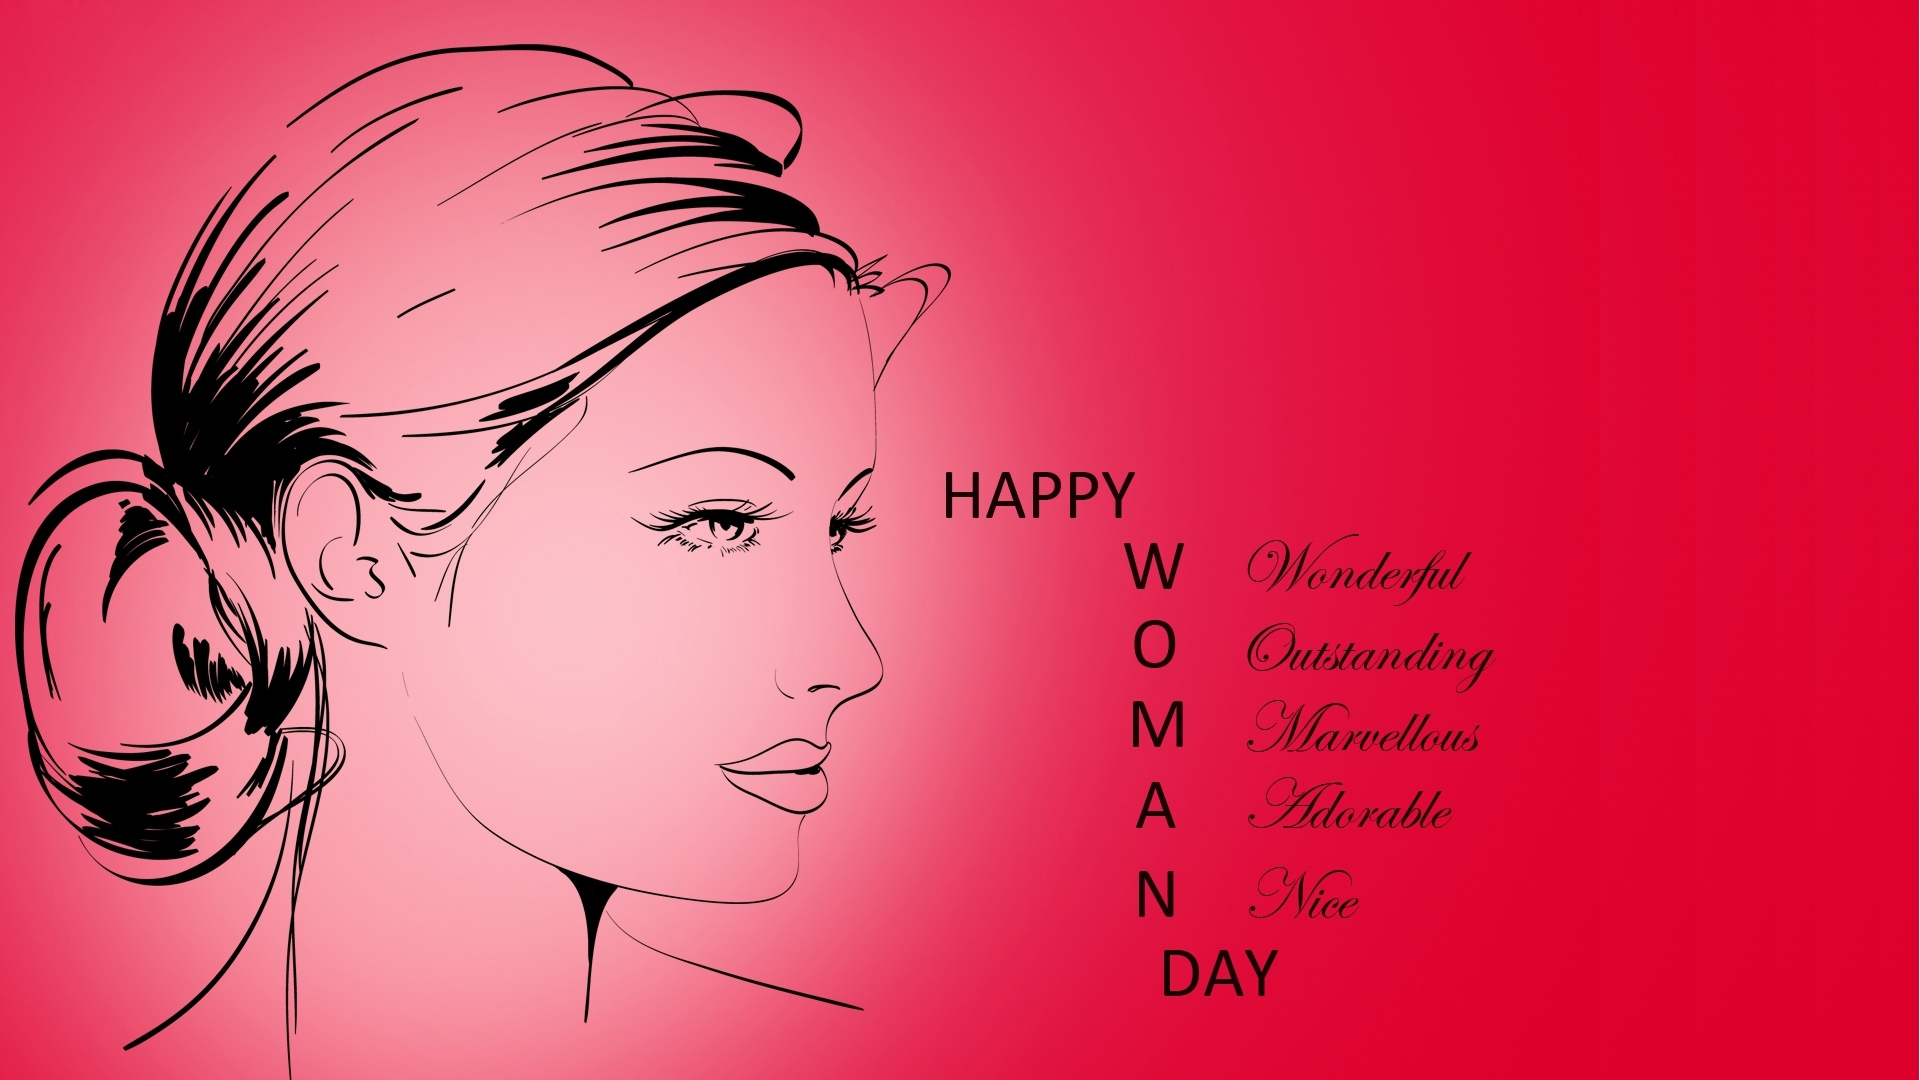 Women's Day Images and Wallpapers 2017